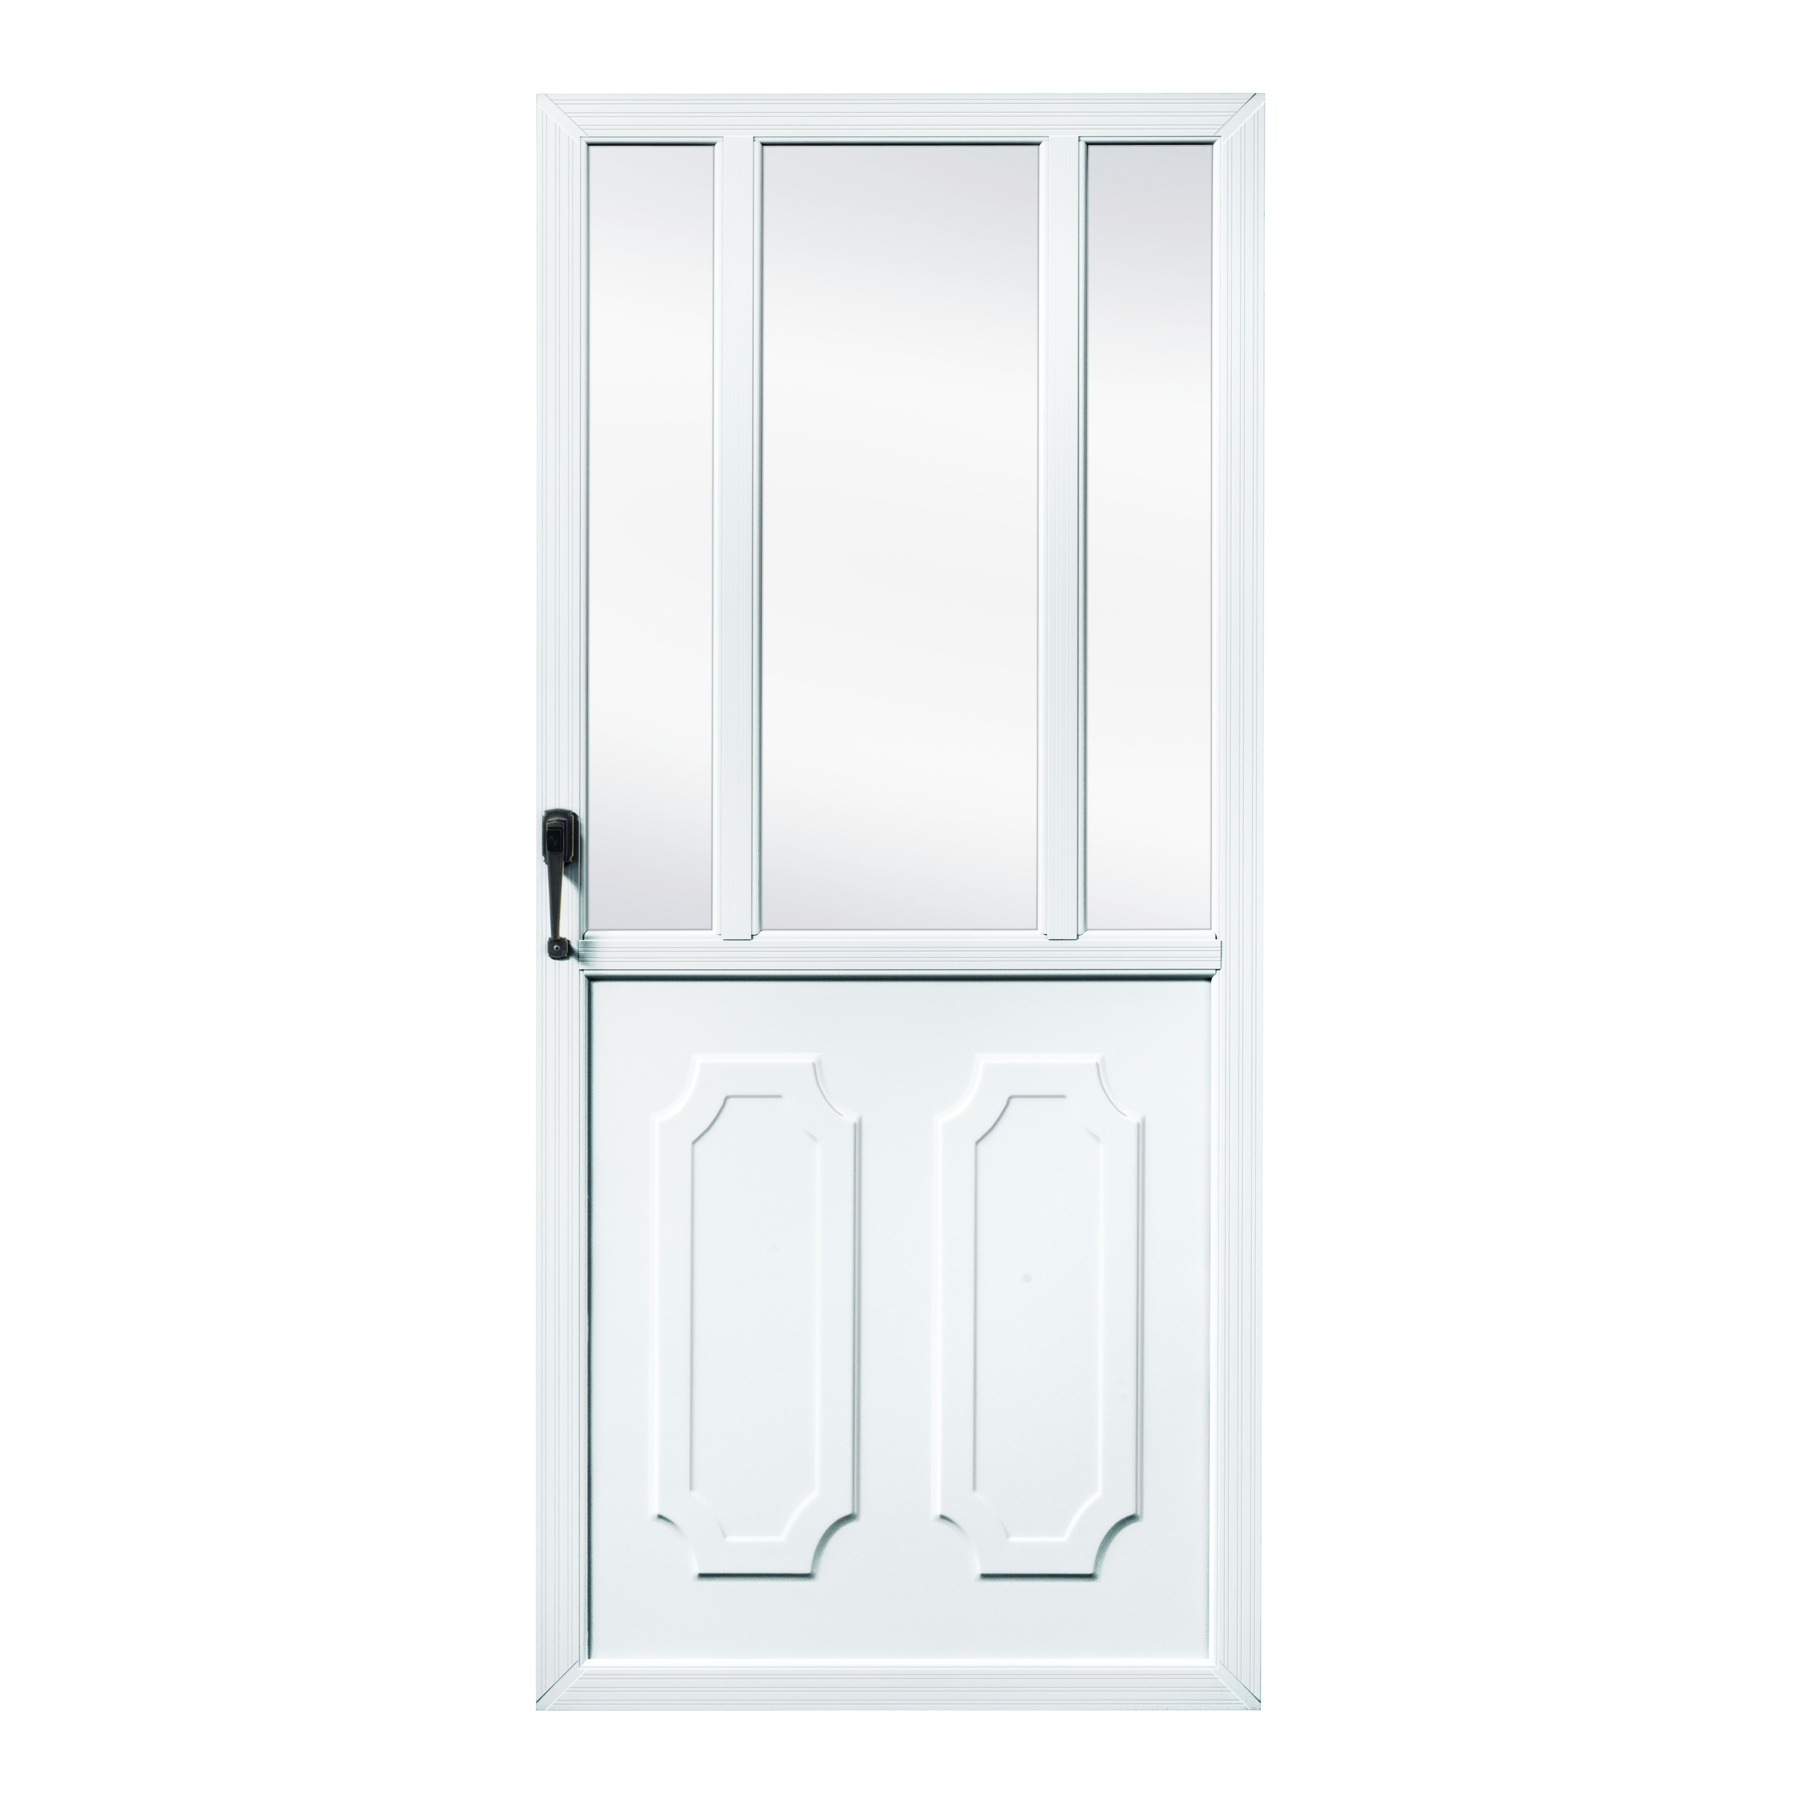 Fox Weldoor Model 340 Storm Door